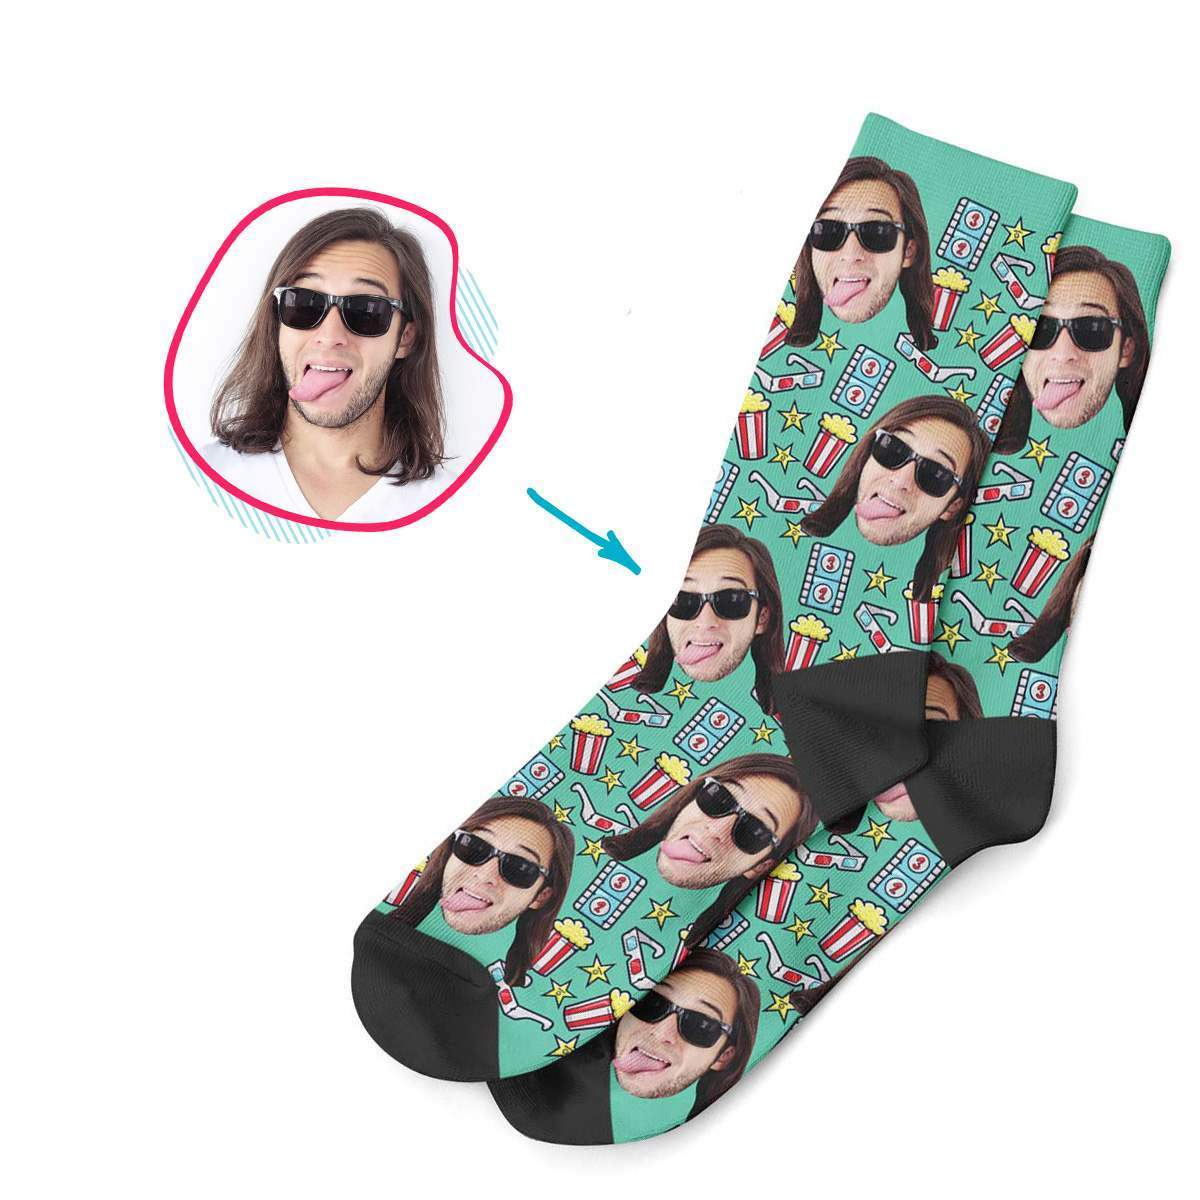 mint Movie socks personalized with photo of face printed on them